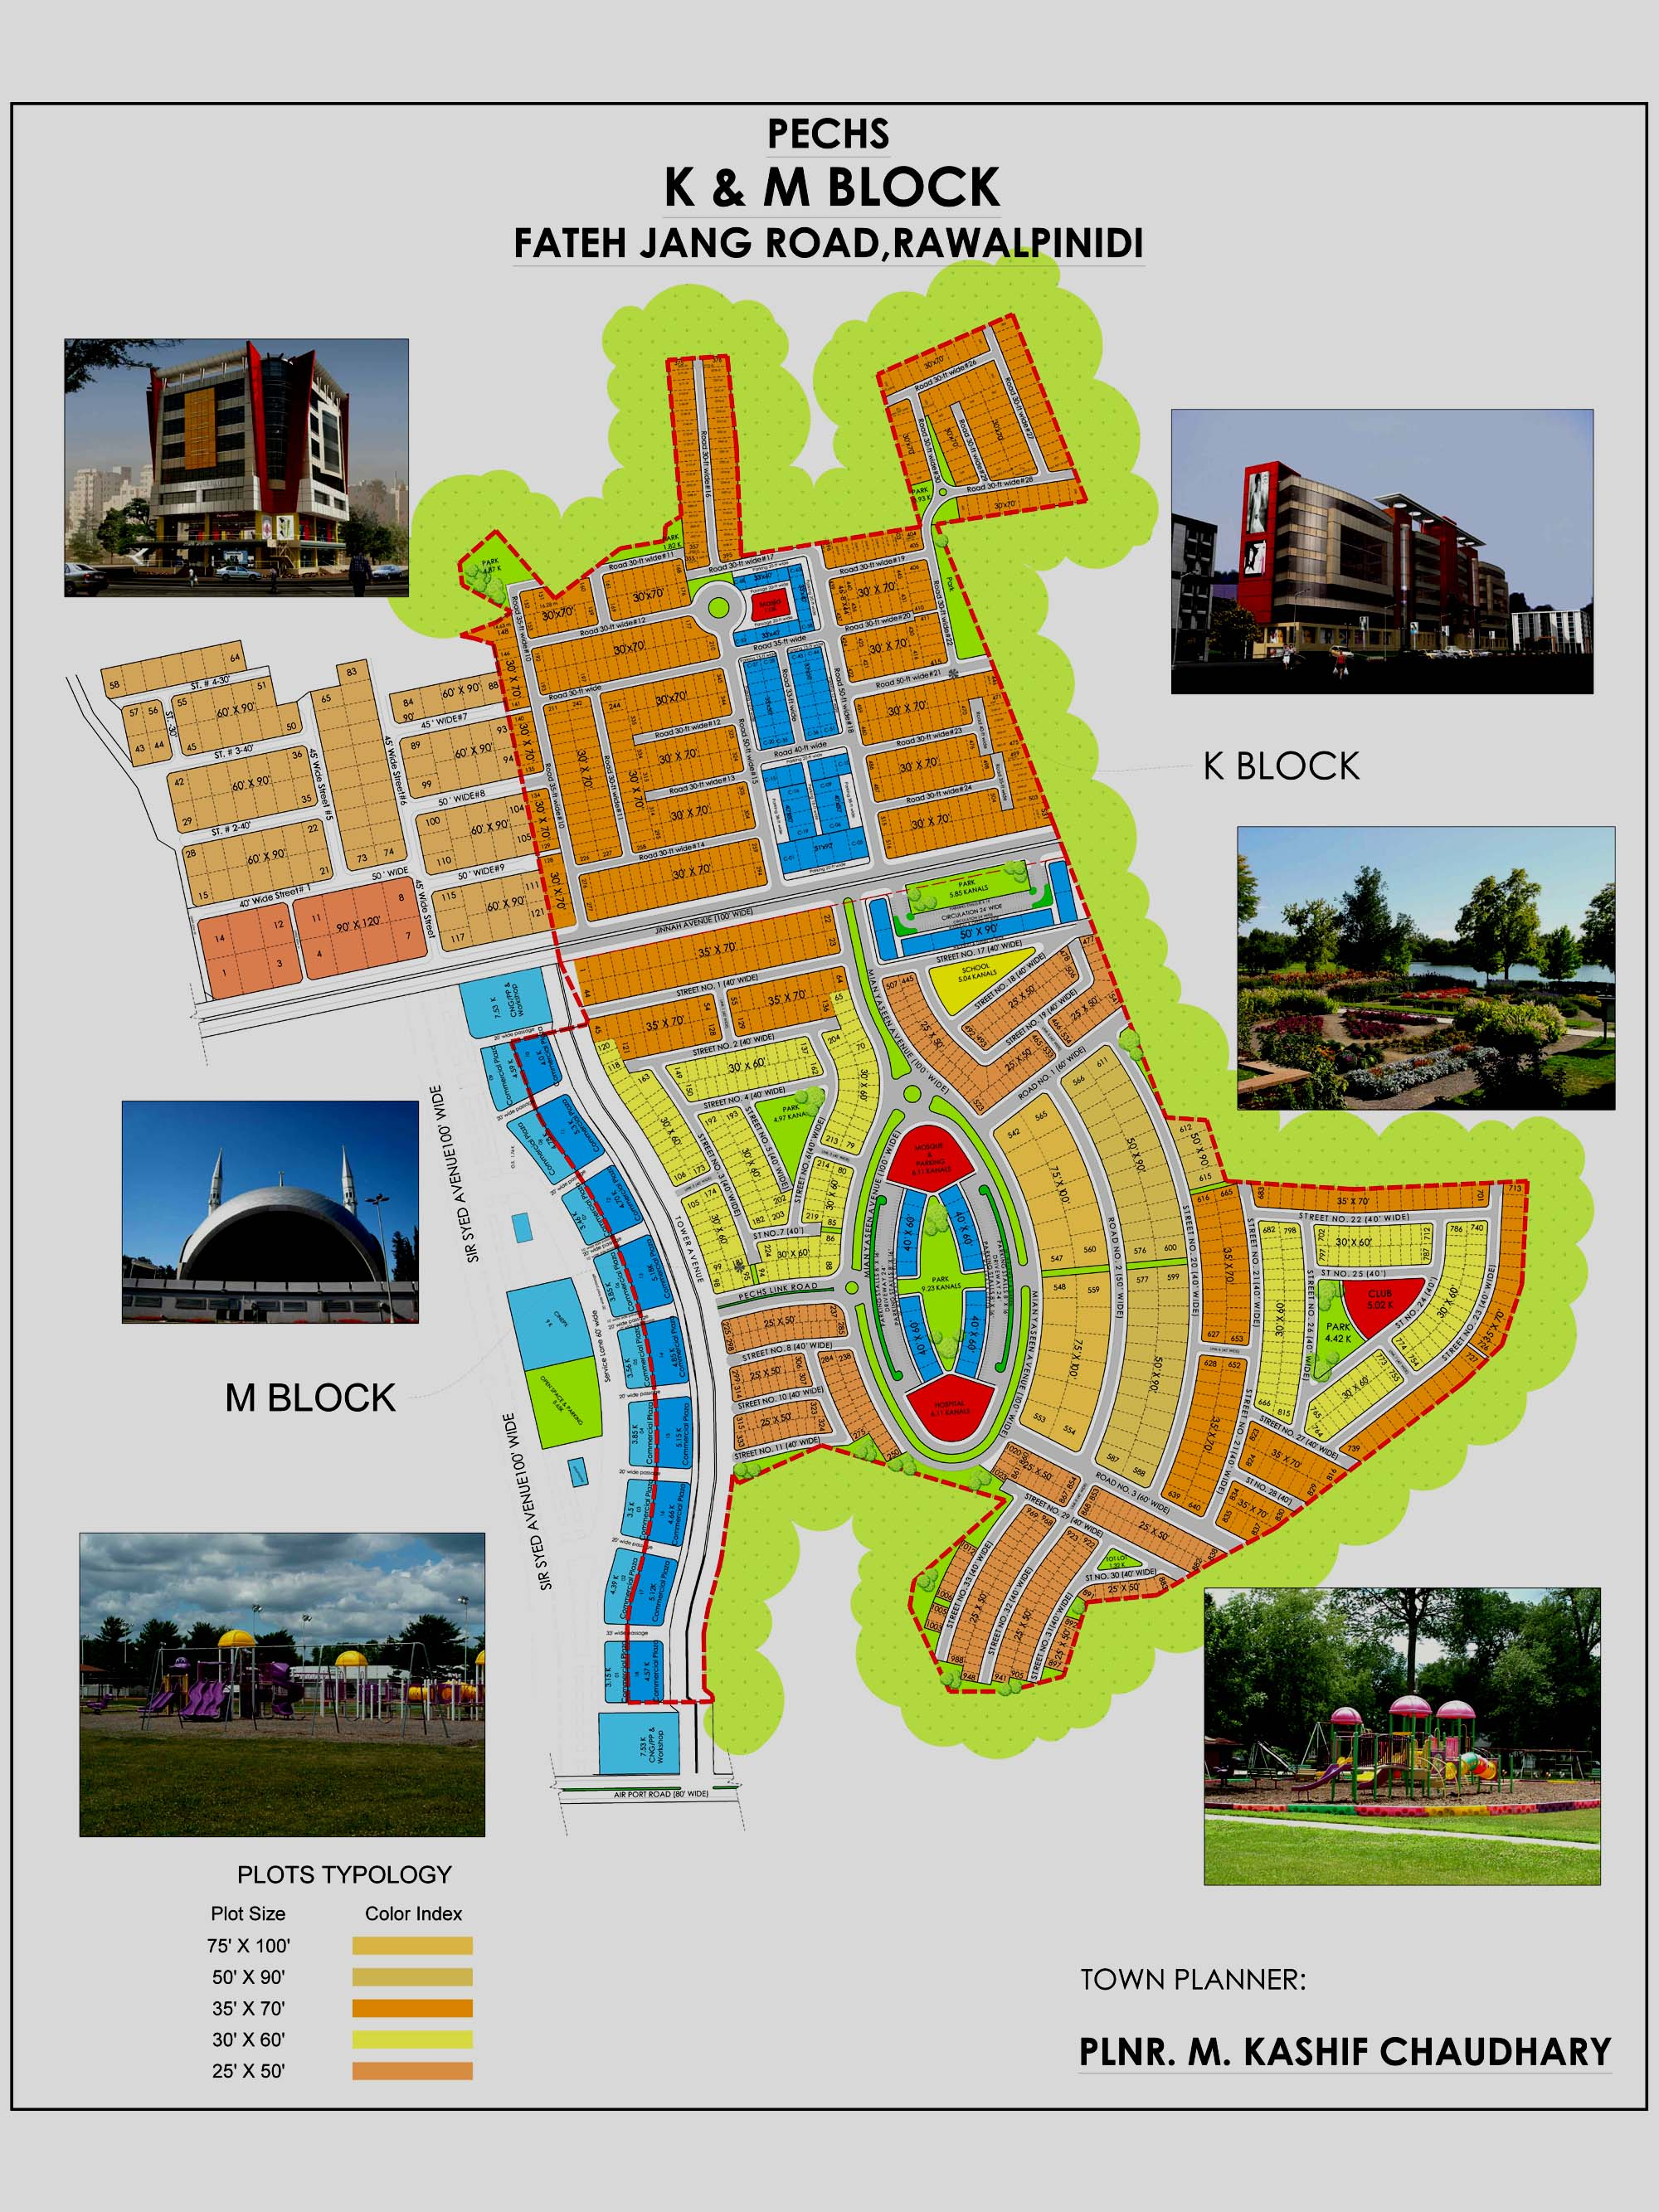 pechs-islamabad-k-m-block-map